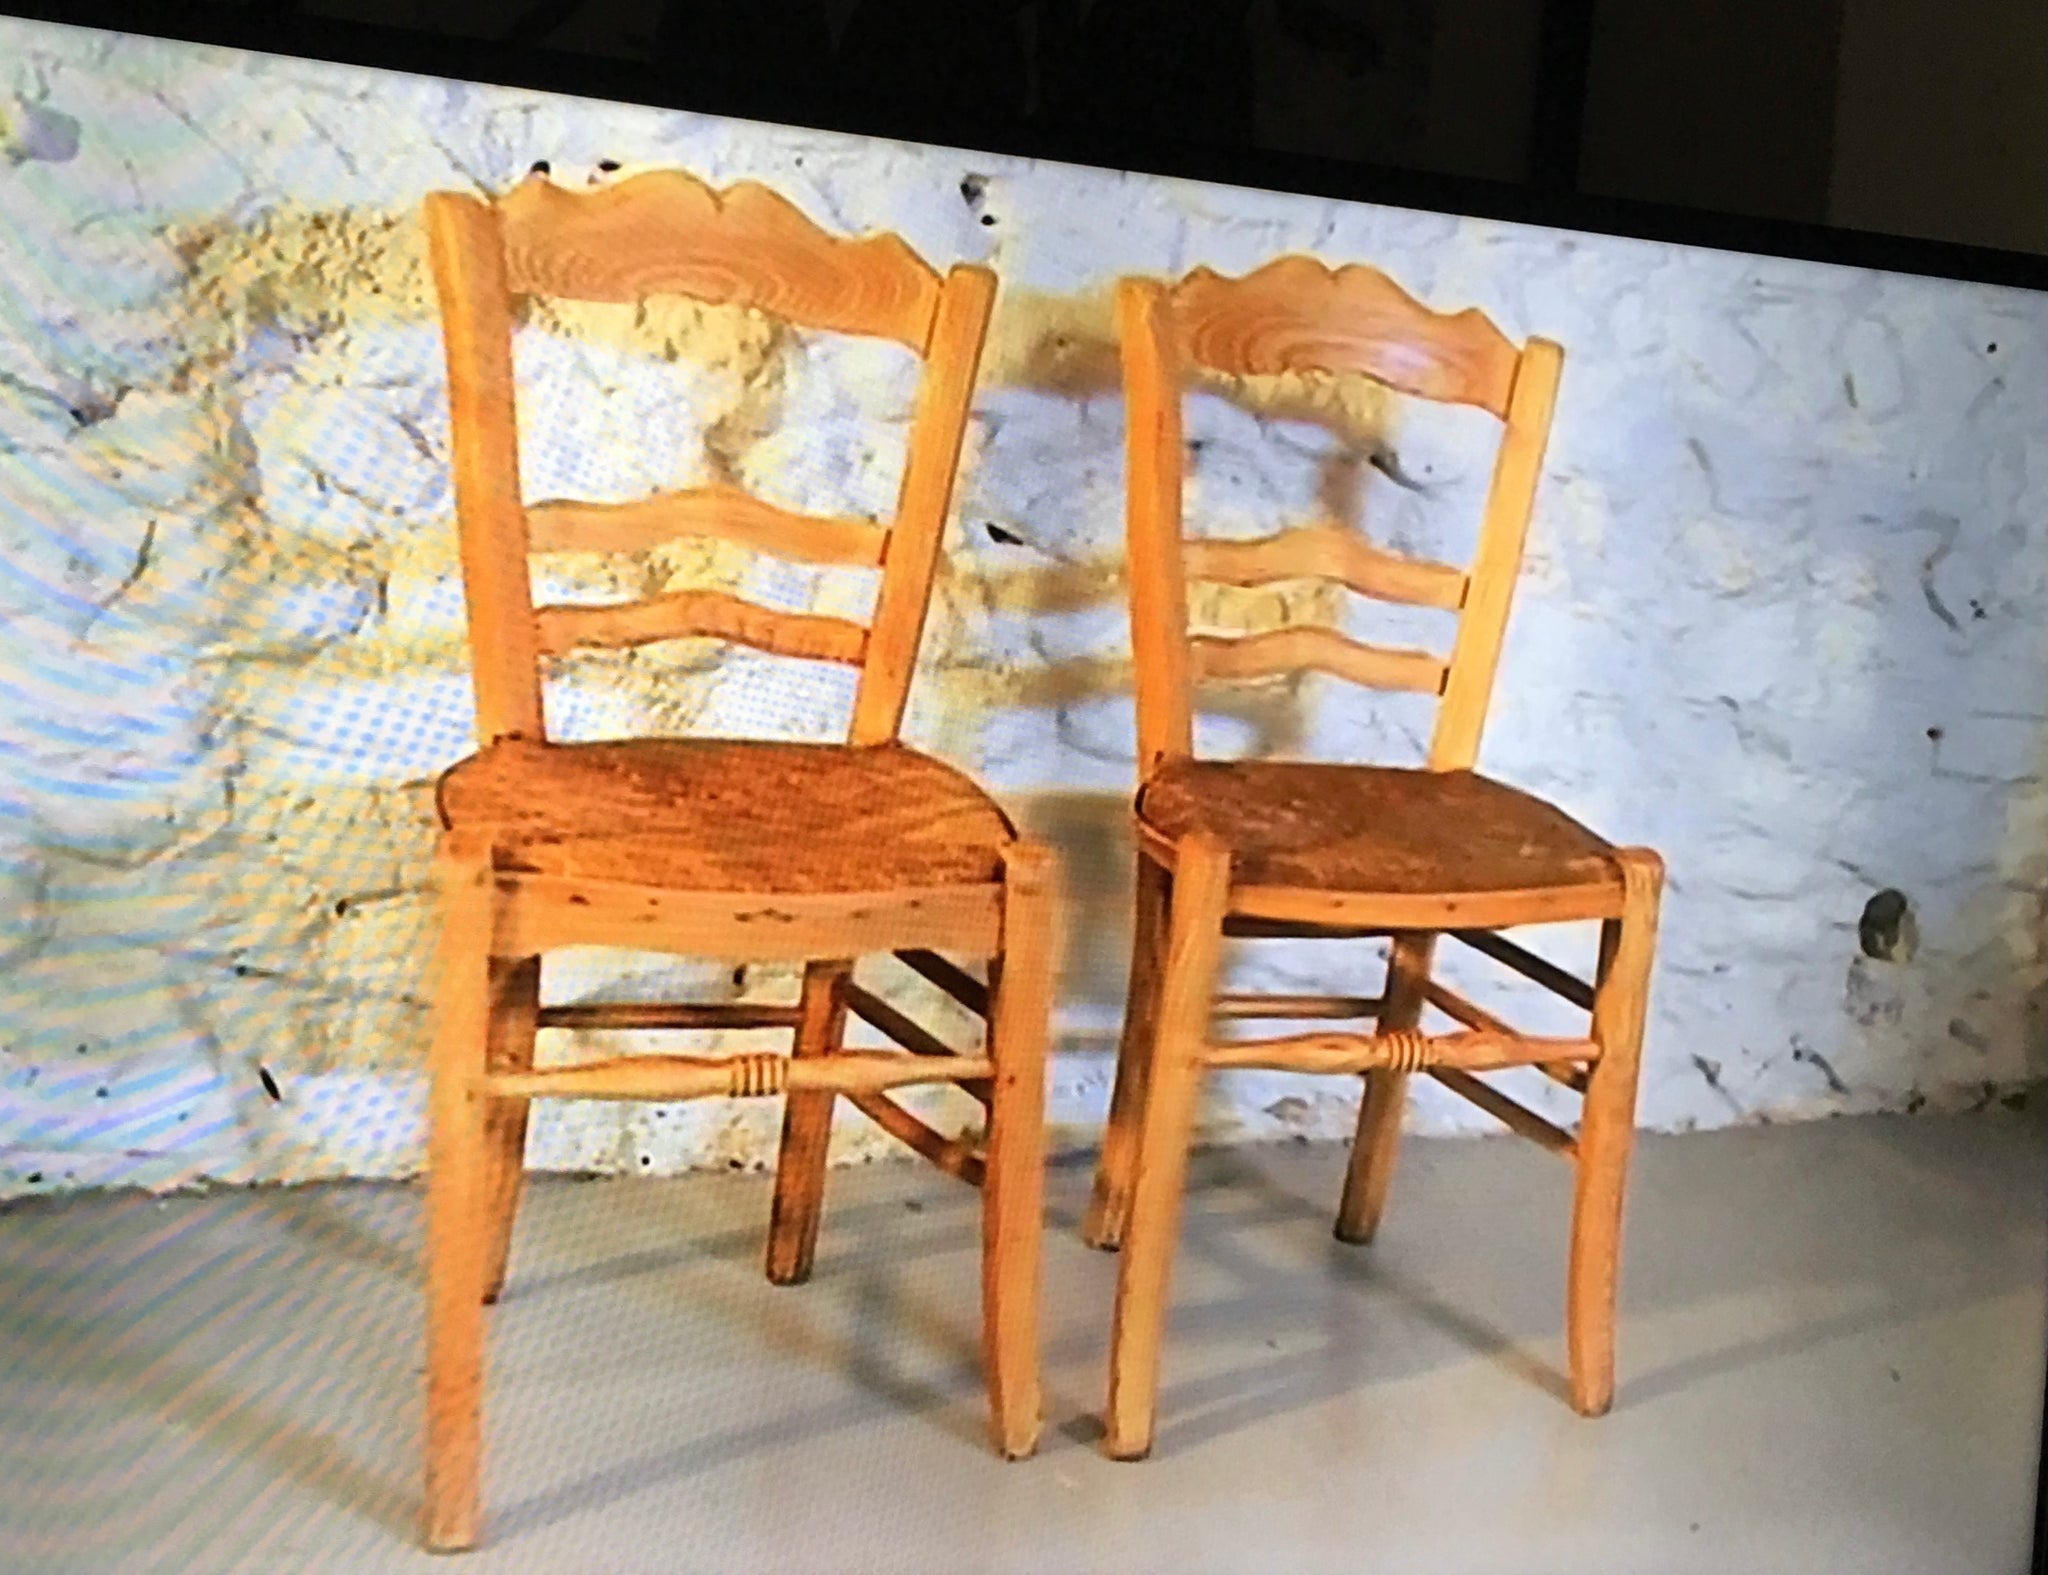 Vintage chairs from Louise Minchin. Set of 2 only.